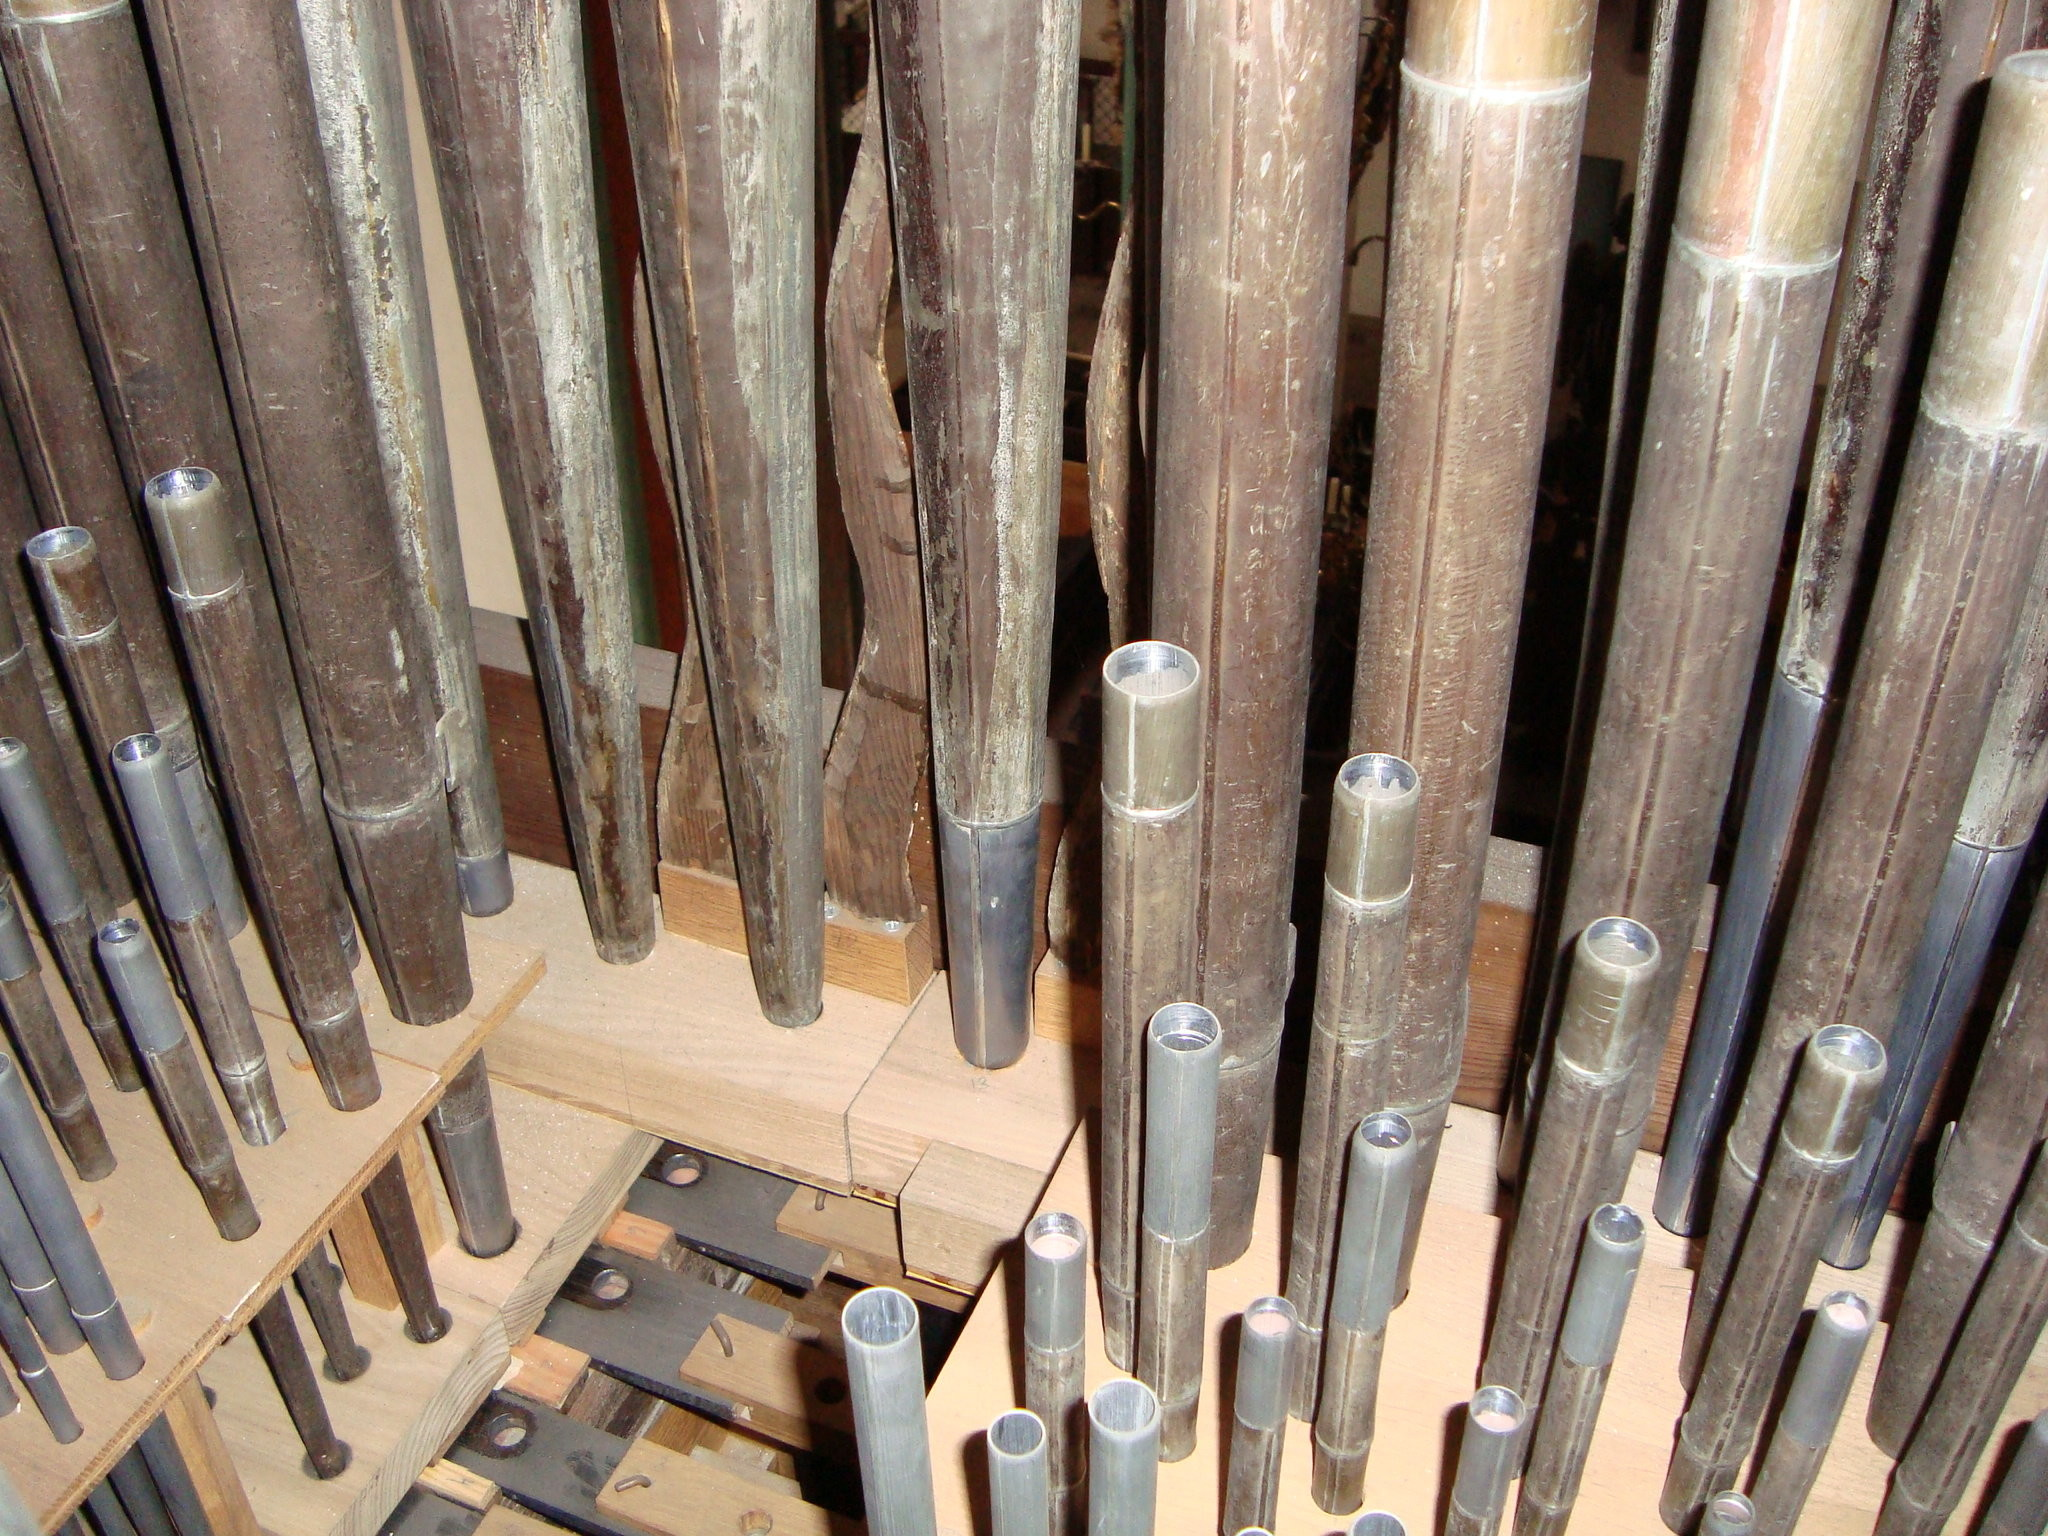 2048x1536 View full size An interior view of the Stellwagen organ shows the variety  of the instrument's pipes. The base of each pipe rests atop a wood wind  chest, ...